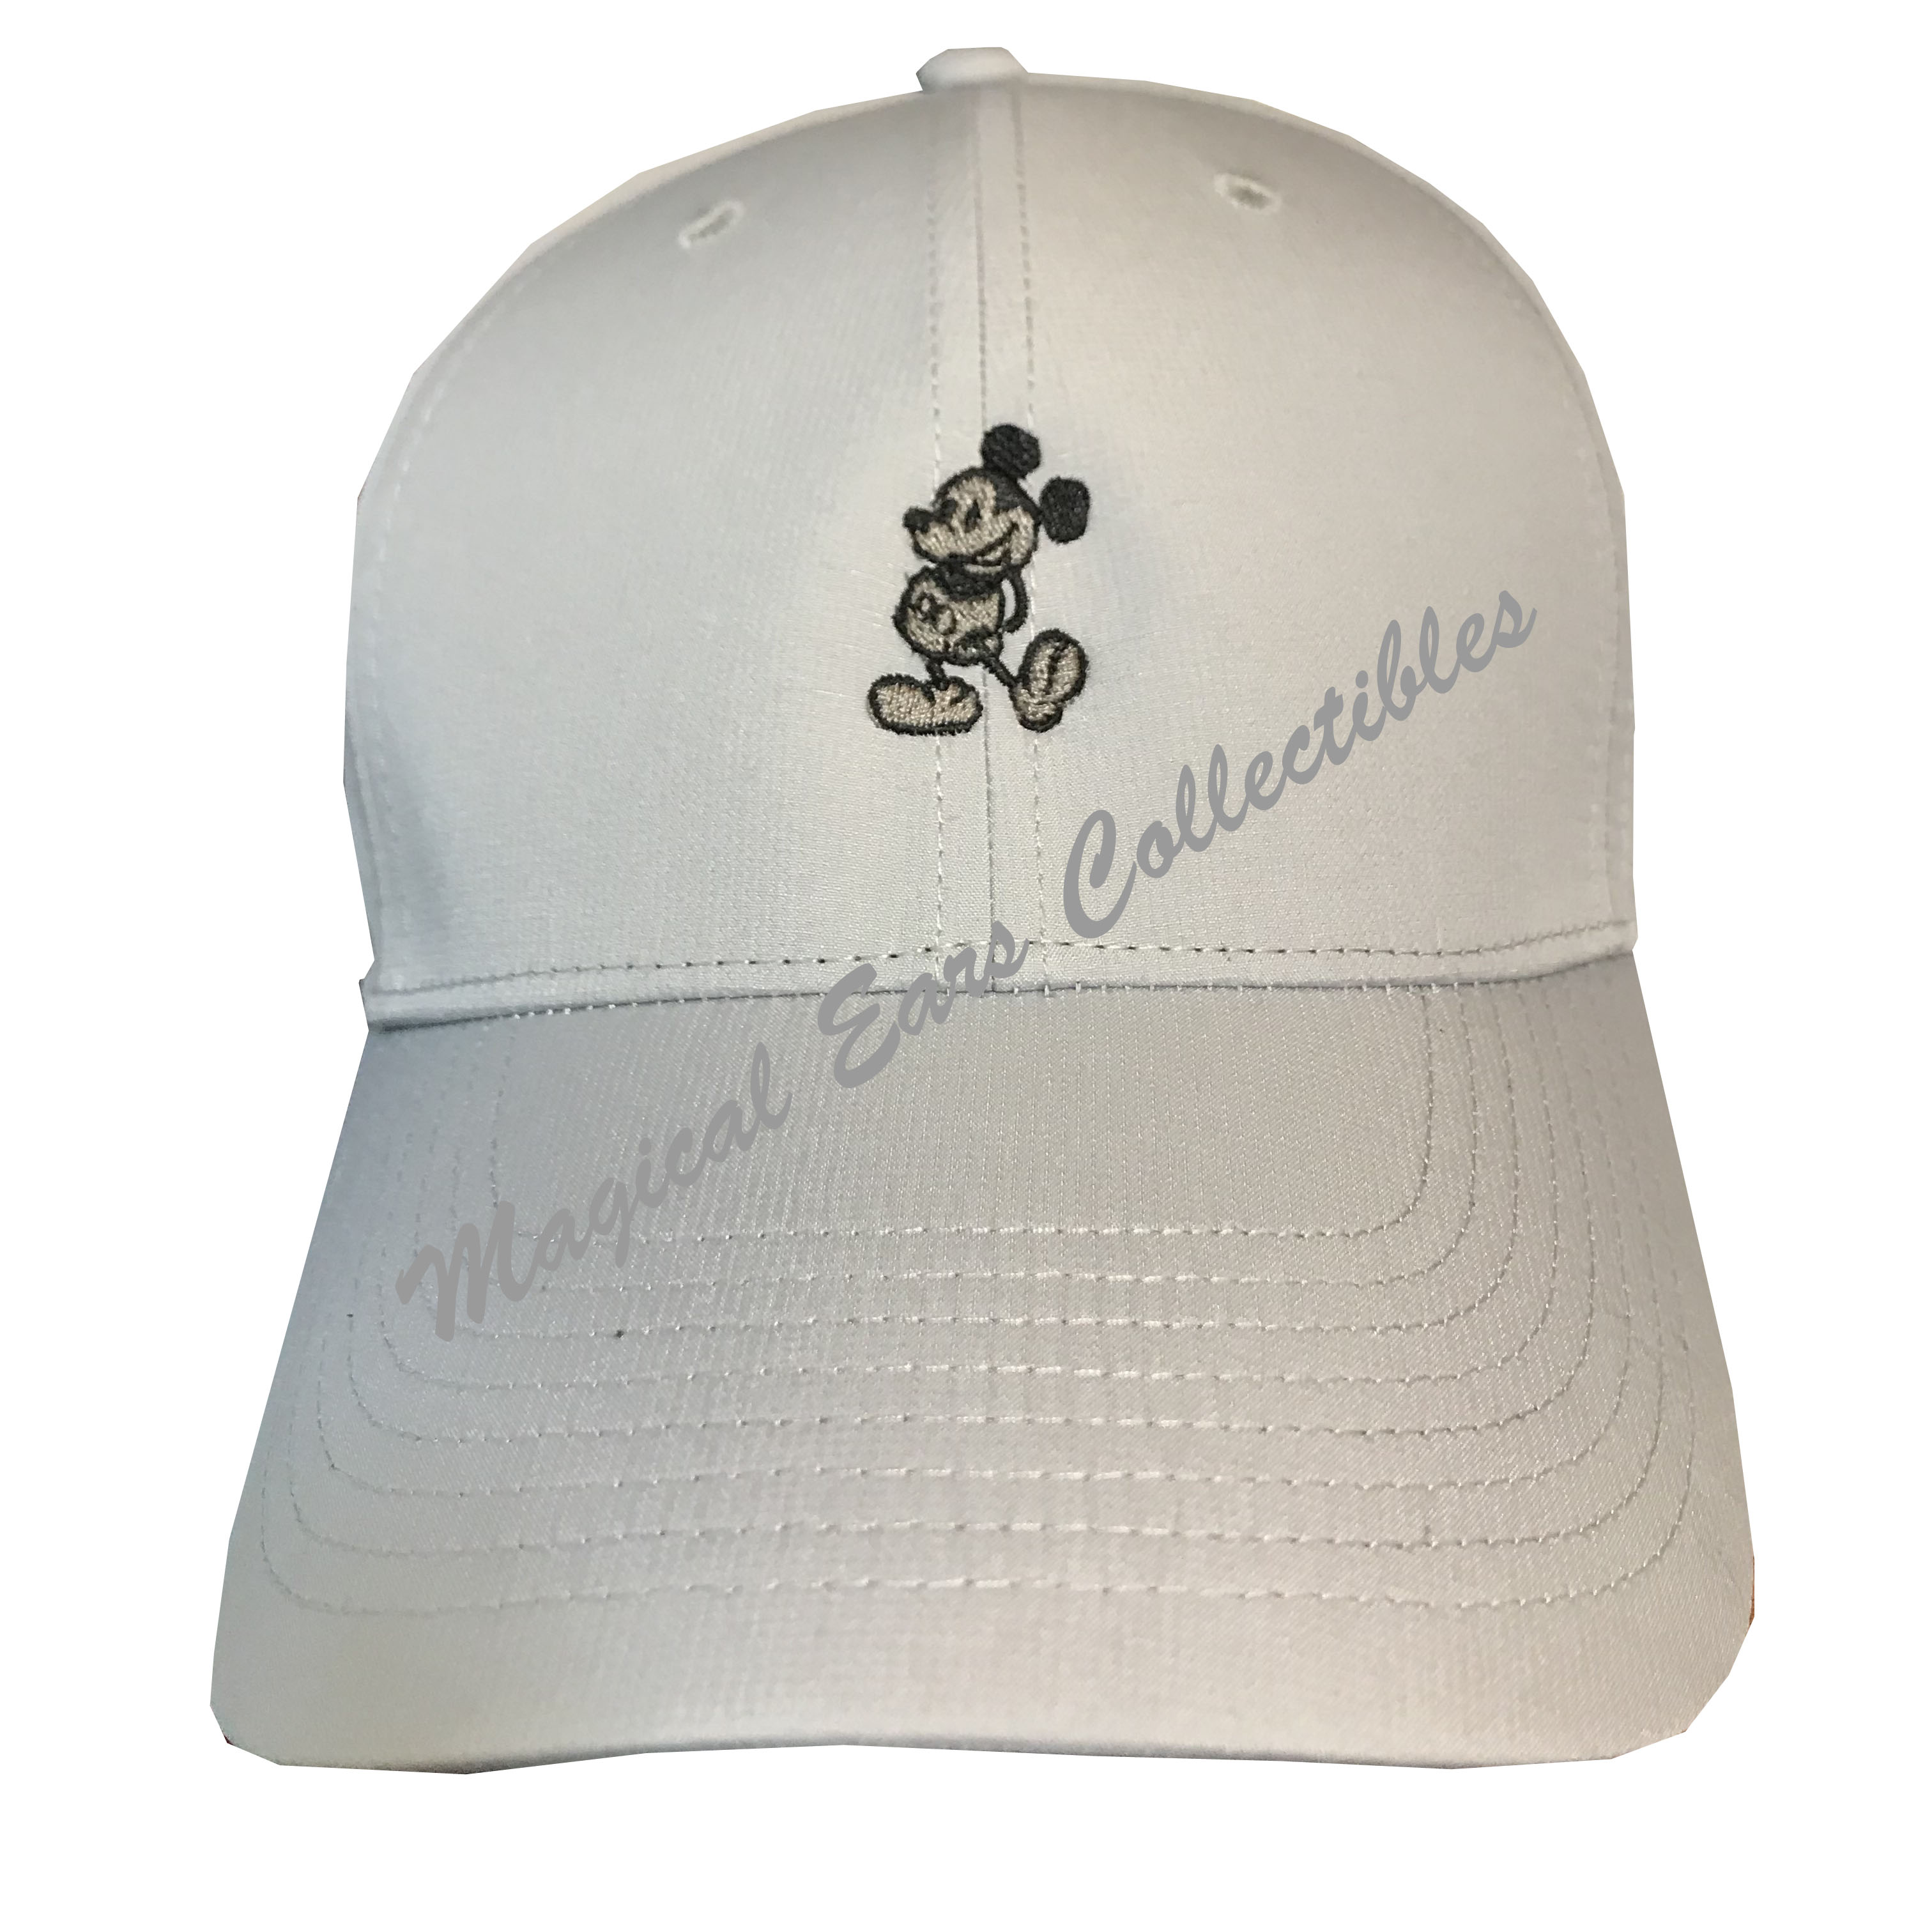 Add to My Lists. Disney Hat - Baseball Cap - Nike - Mickey Mouse Performance  ... 1aefa38603a